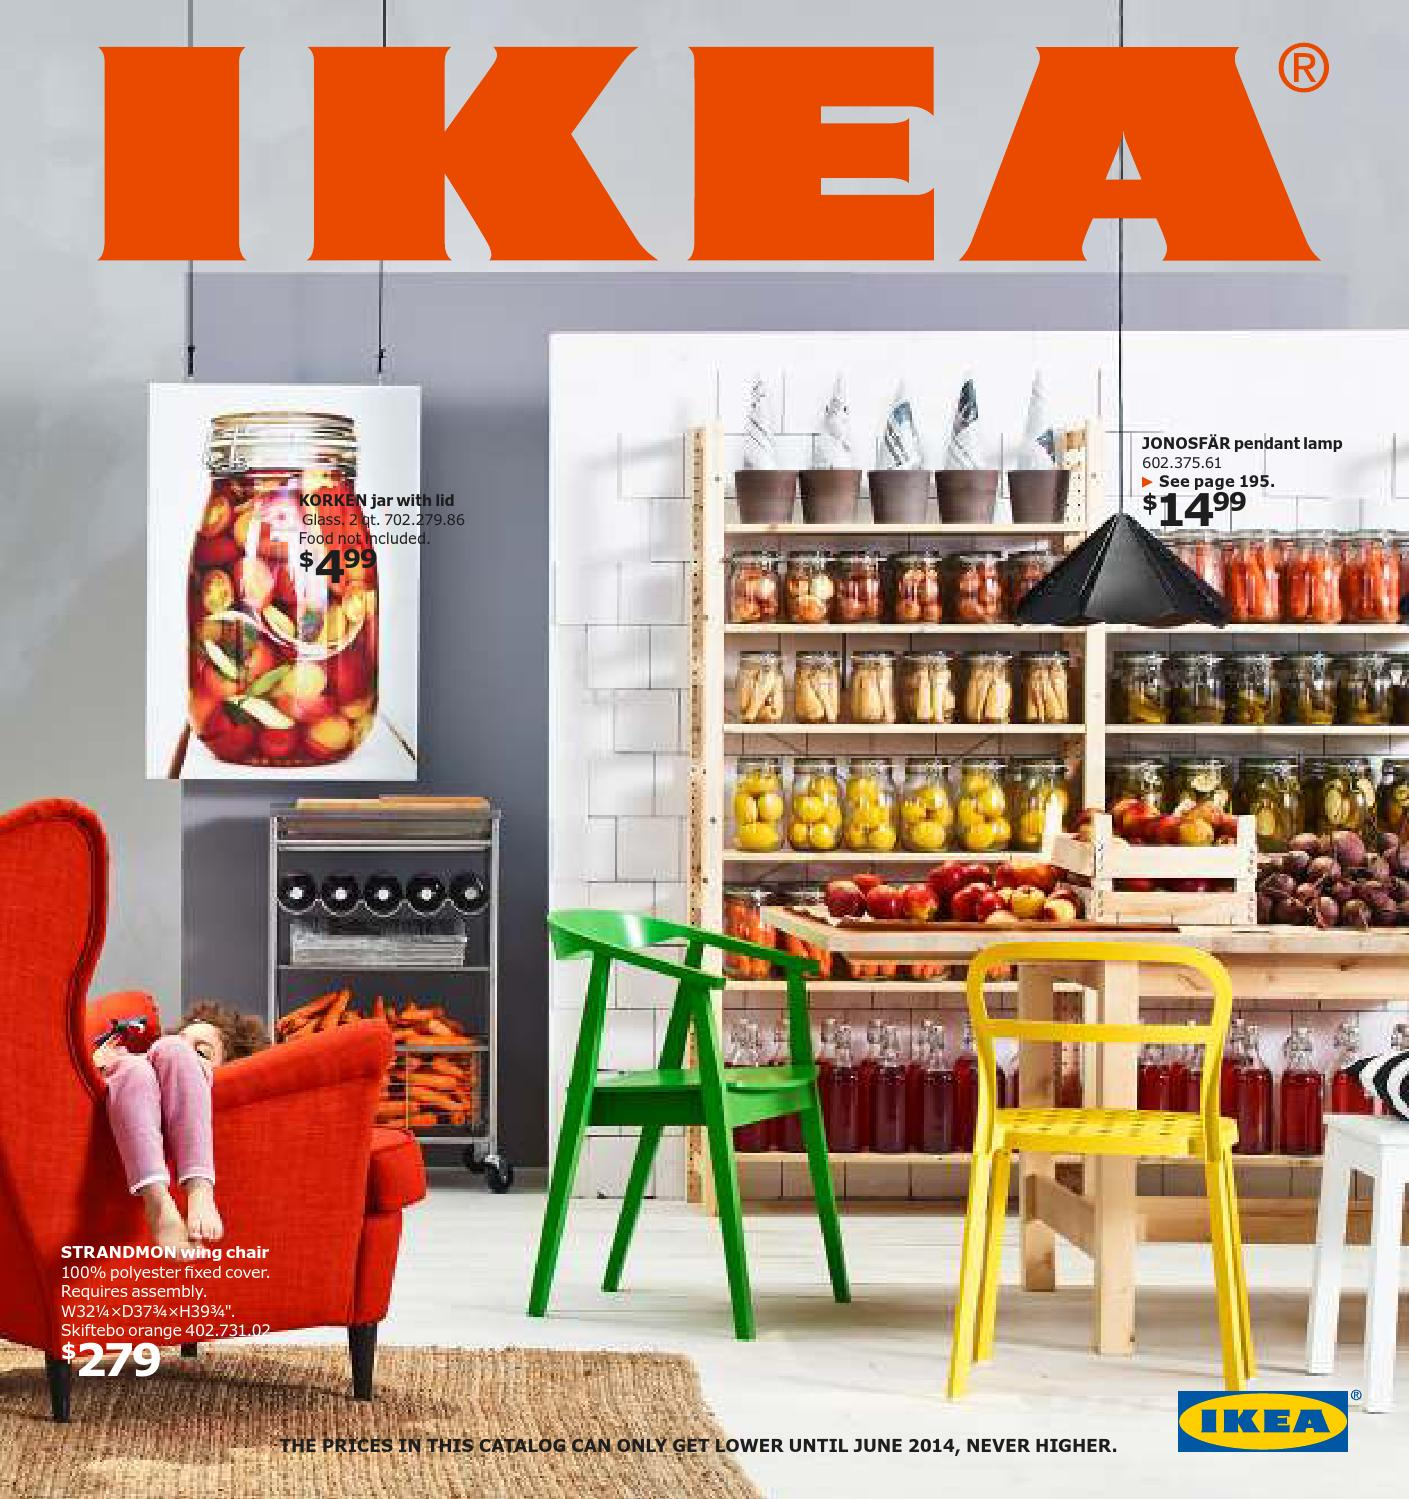 Tvis Keuken Ikea Catalog 2014 By Banidea Brochure Issuu